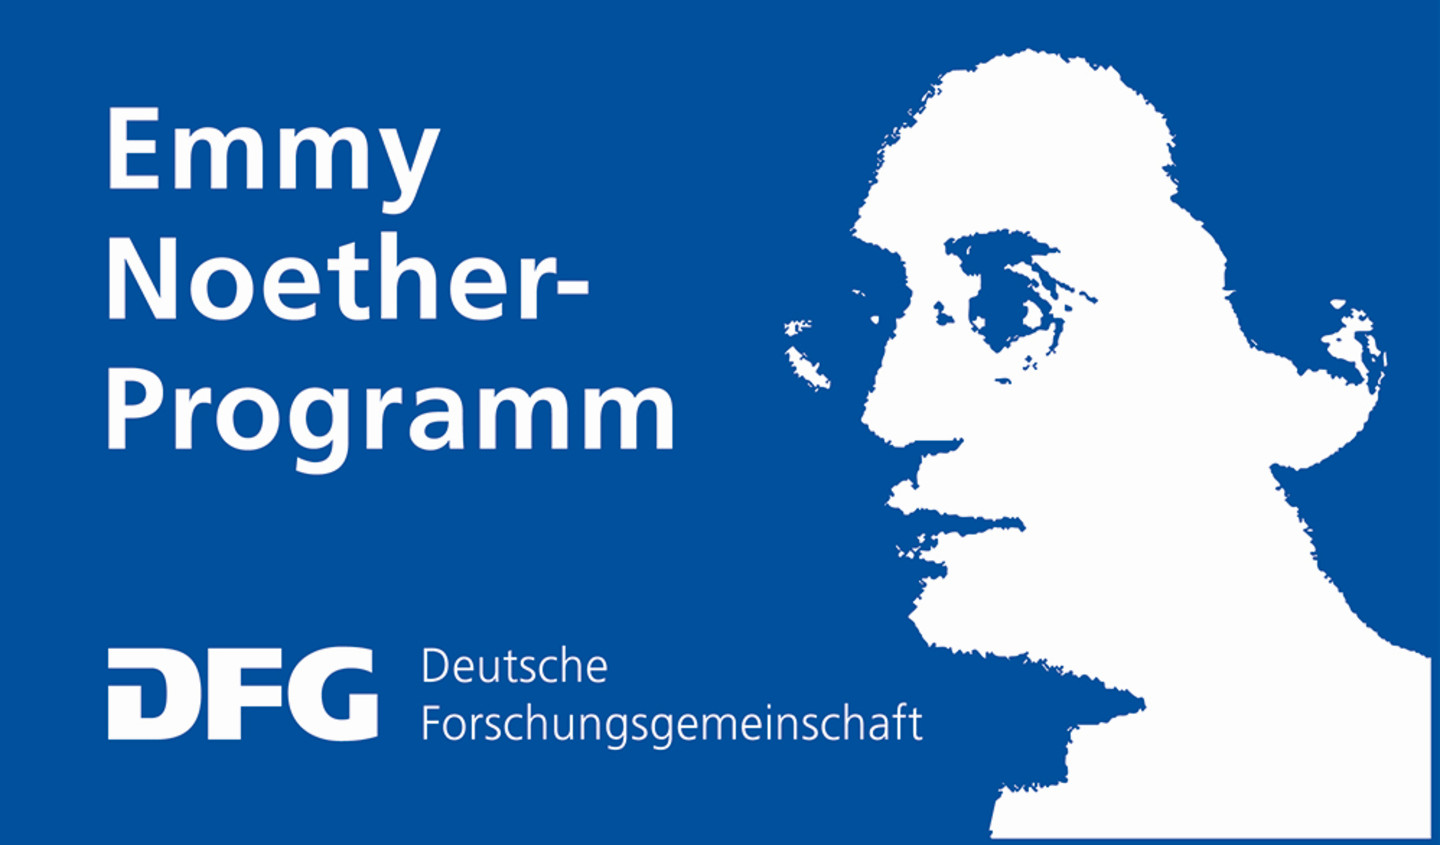 DFG Emmy Noether Logo